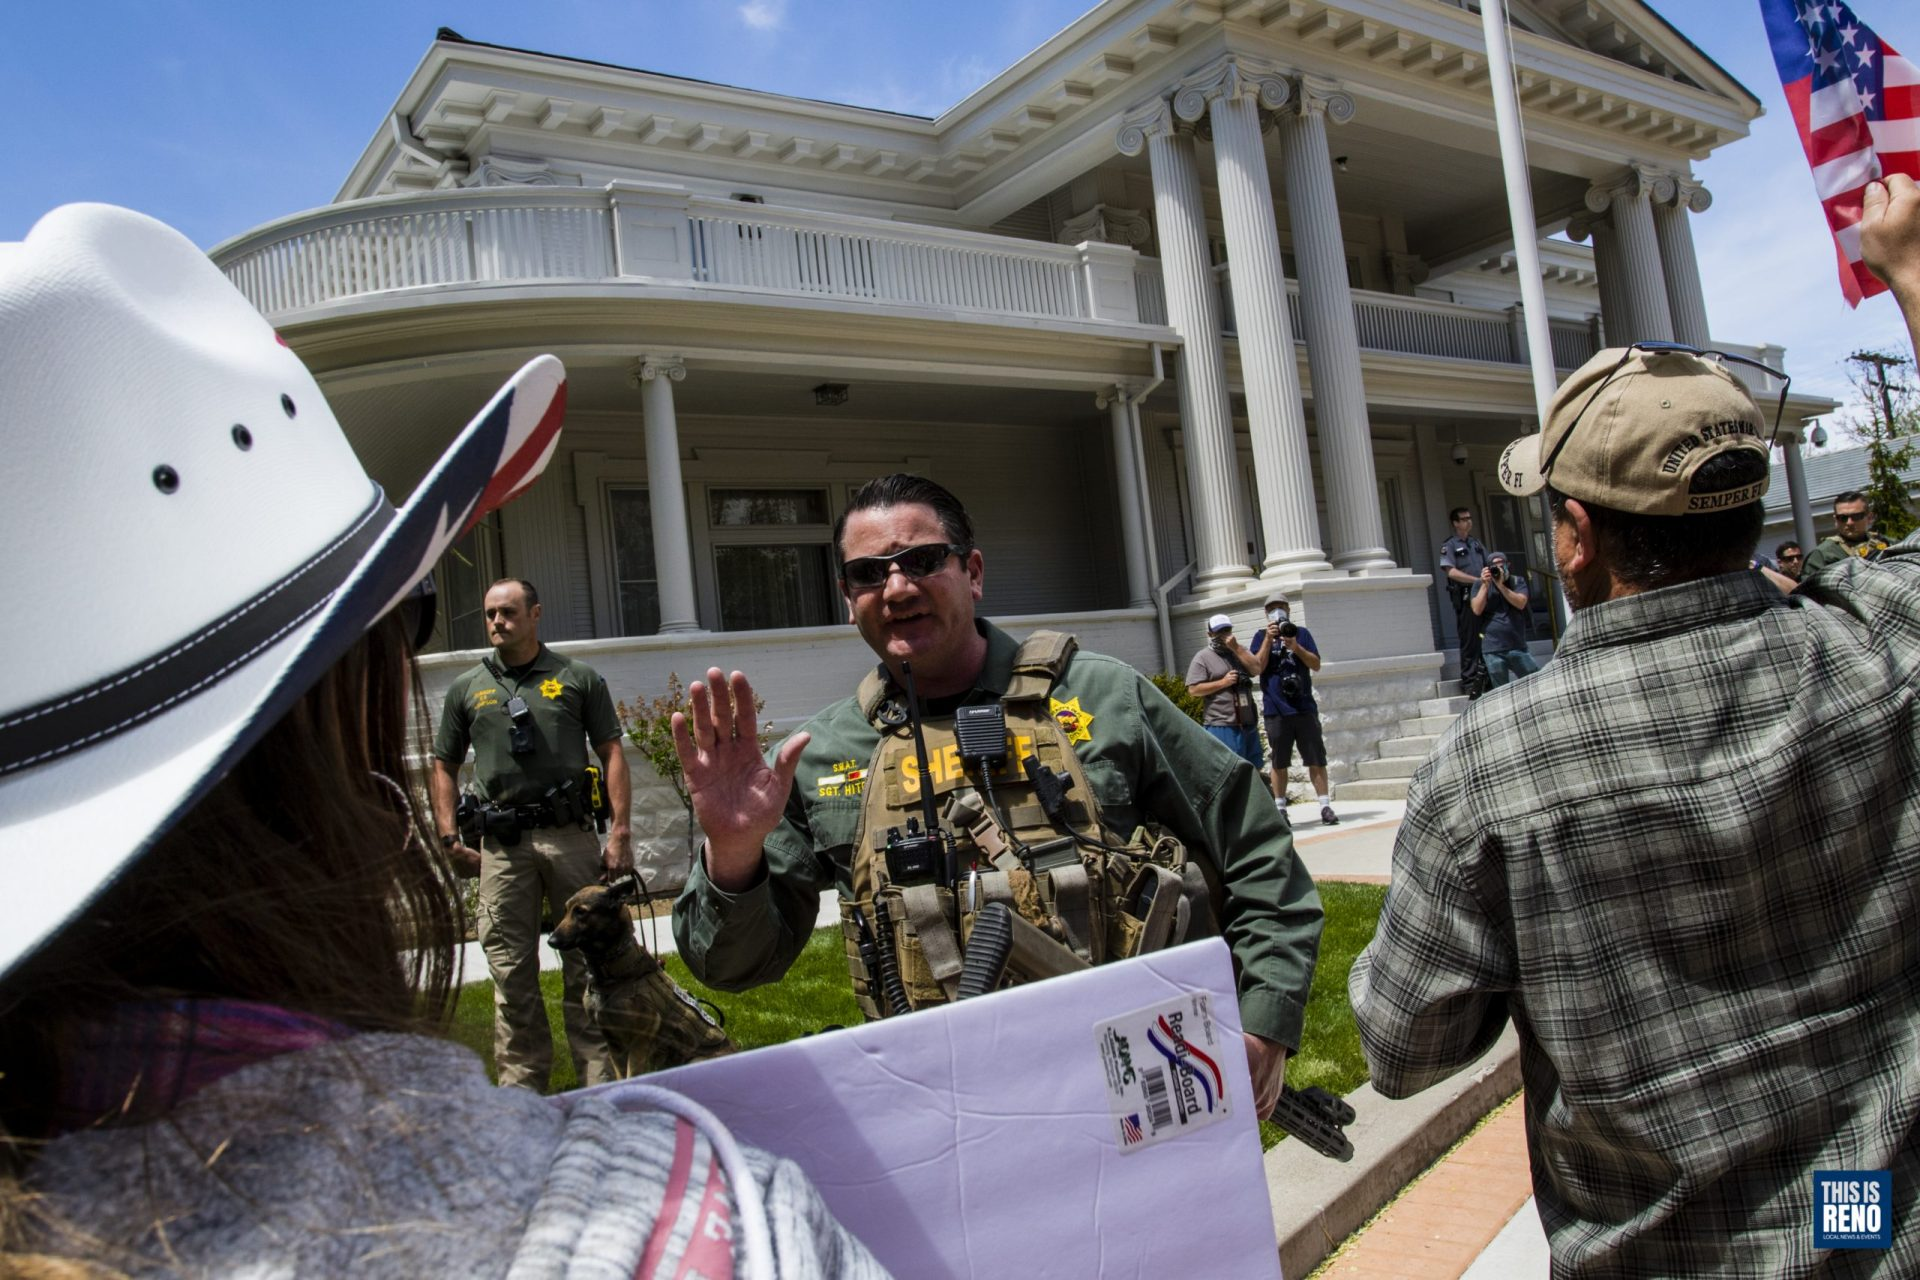 Law enforcement kept back protesters May 2 at the Governor's Mansion during a protest to reopen Nevada and recall Gov. Sisolak. Image: Ty O'Neil